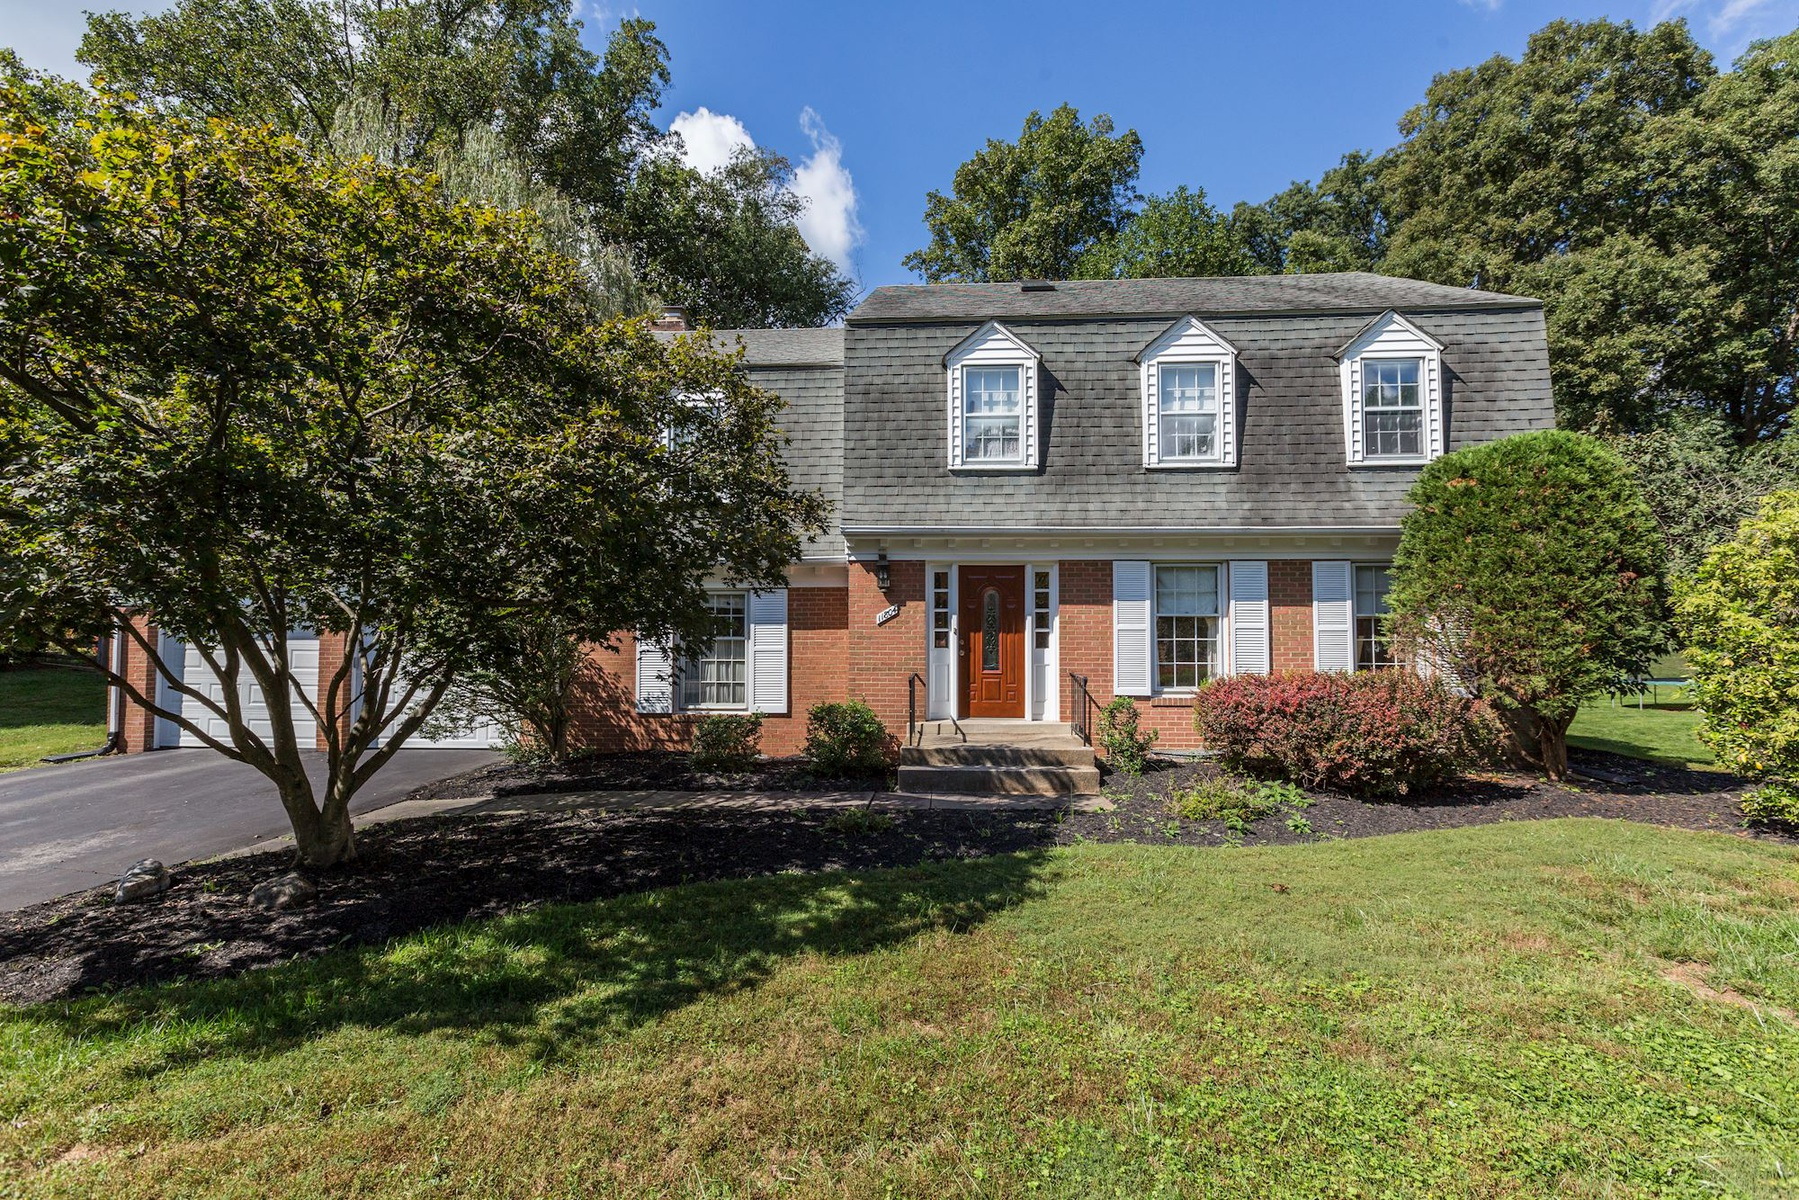 Single Family Home for Sale at Potomac 11804 Gregerscroft Rd Potomac, Maryland 20854 United States